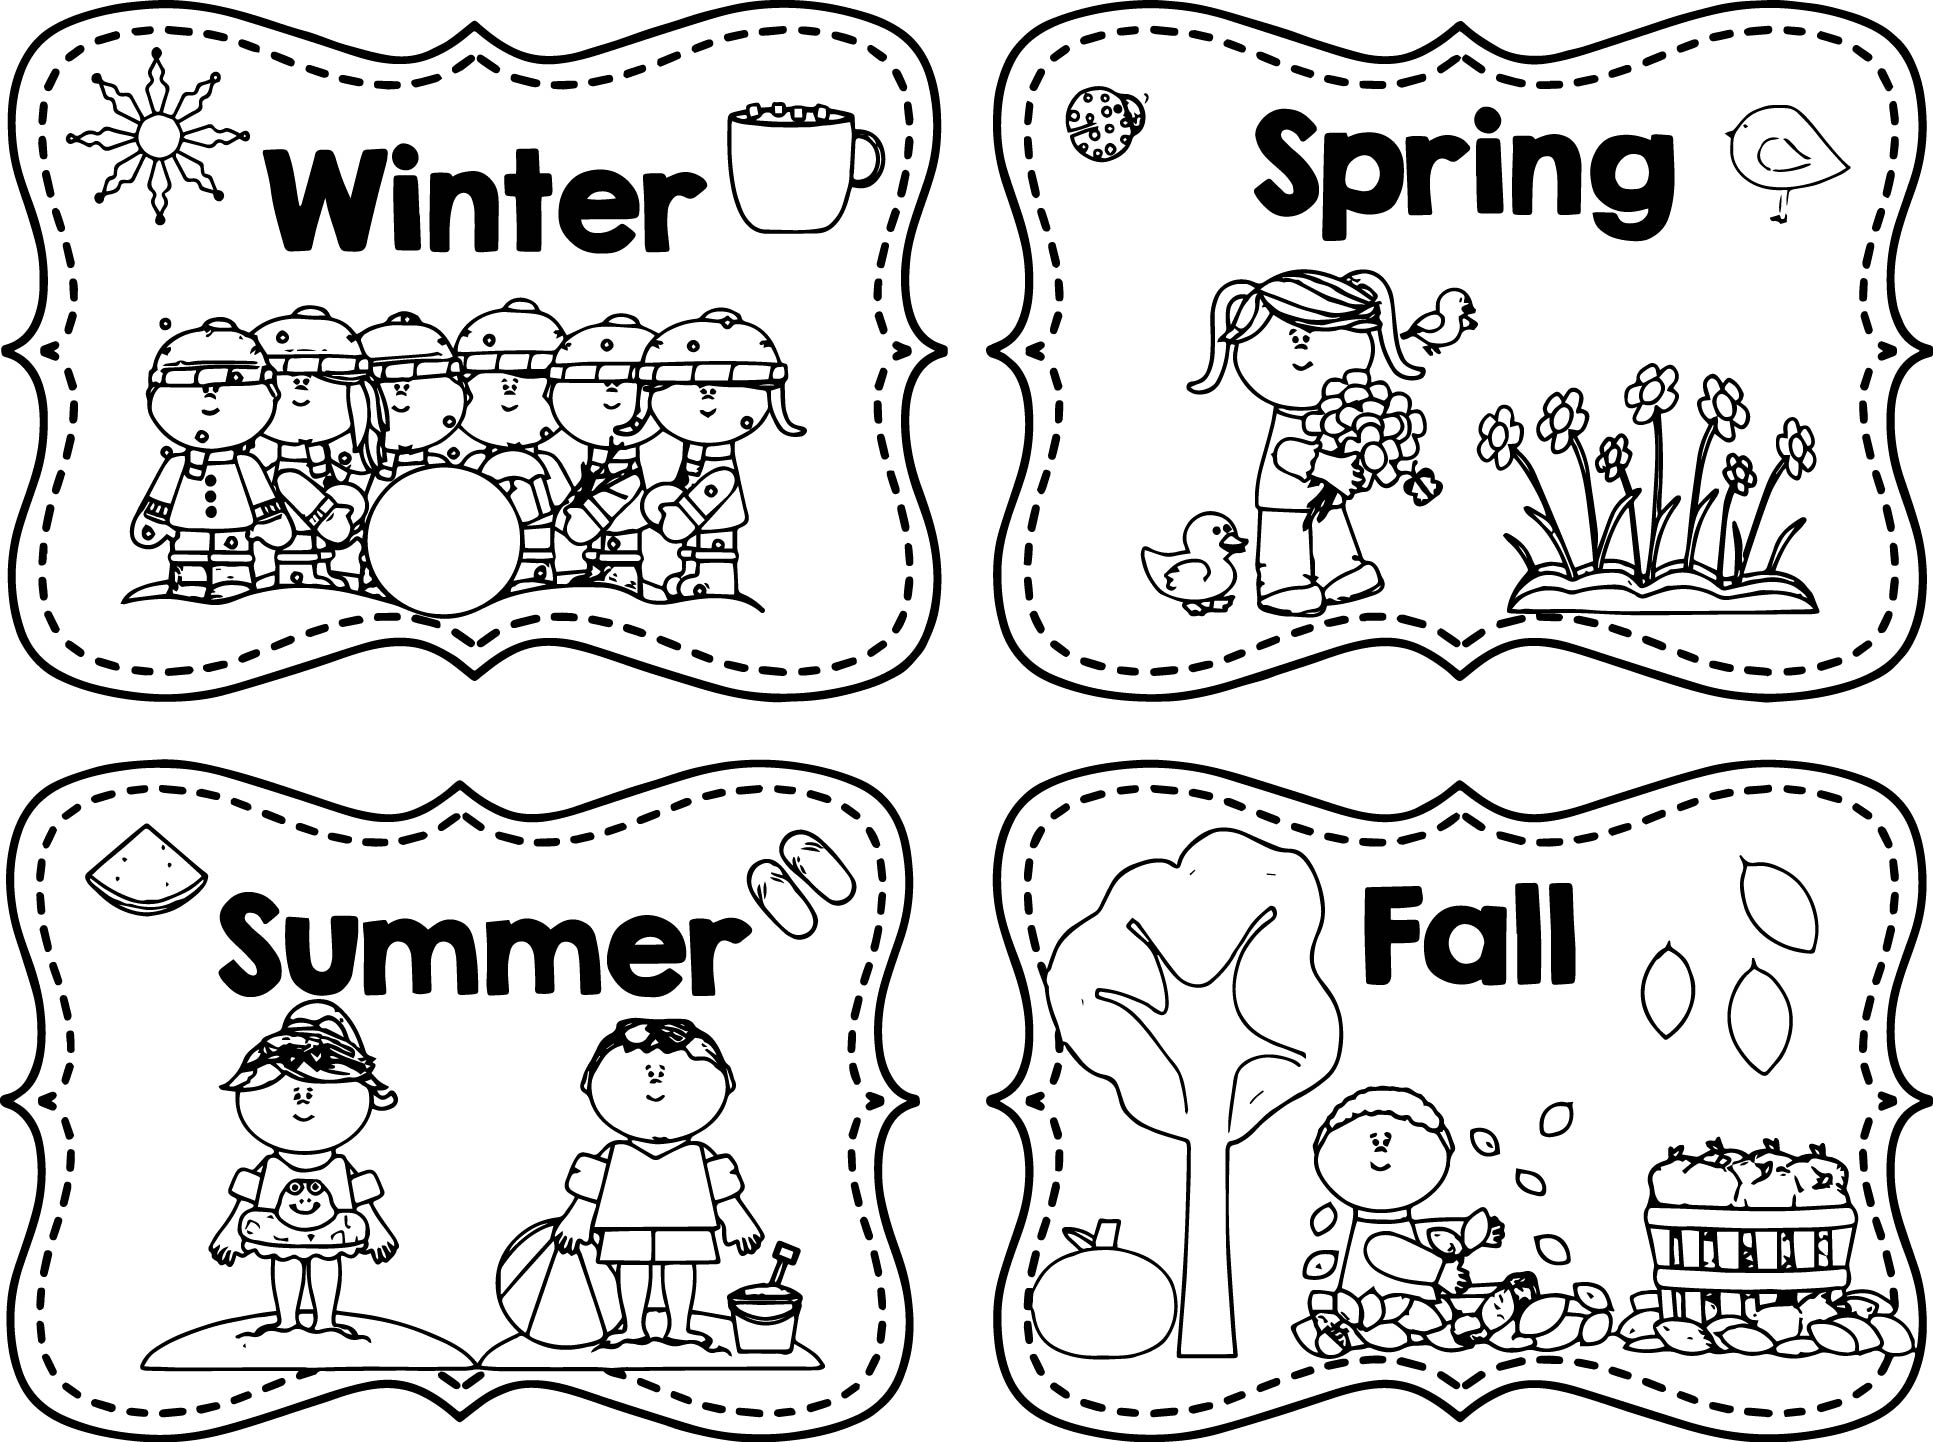 Winter Spring Summer Fall Coloring Page